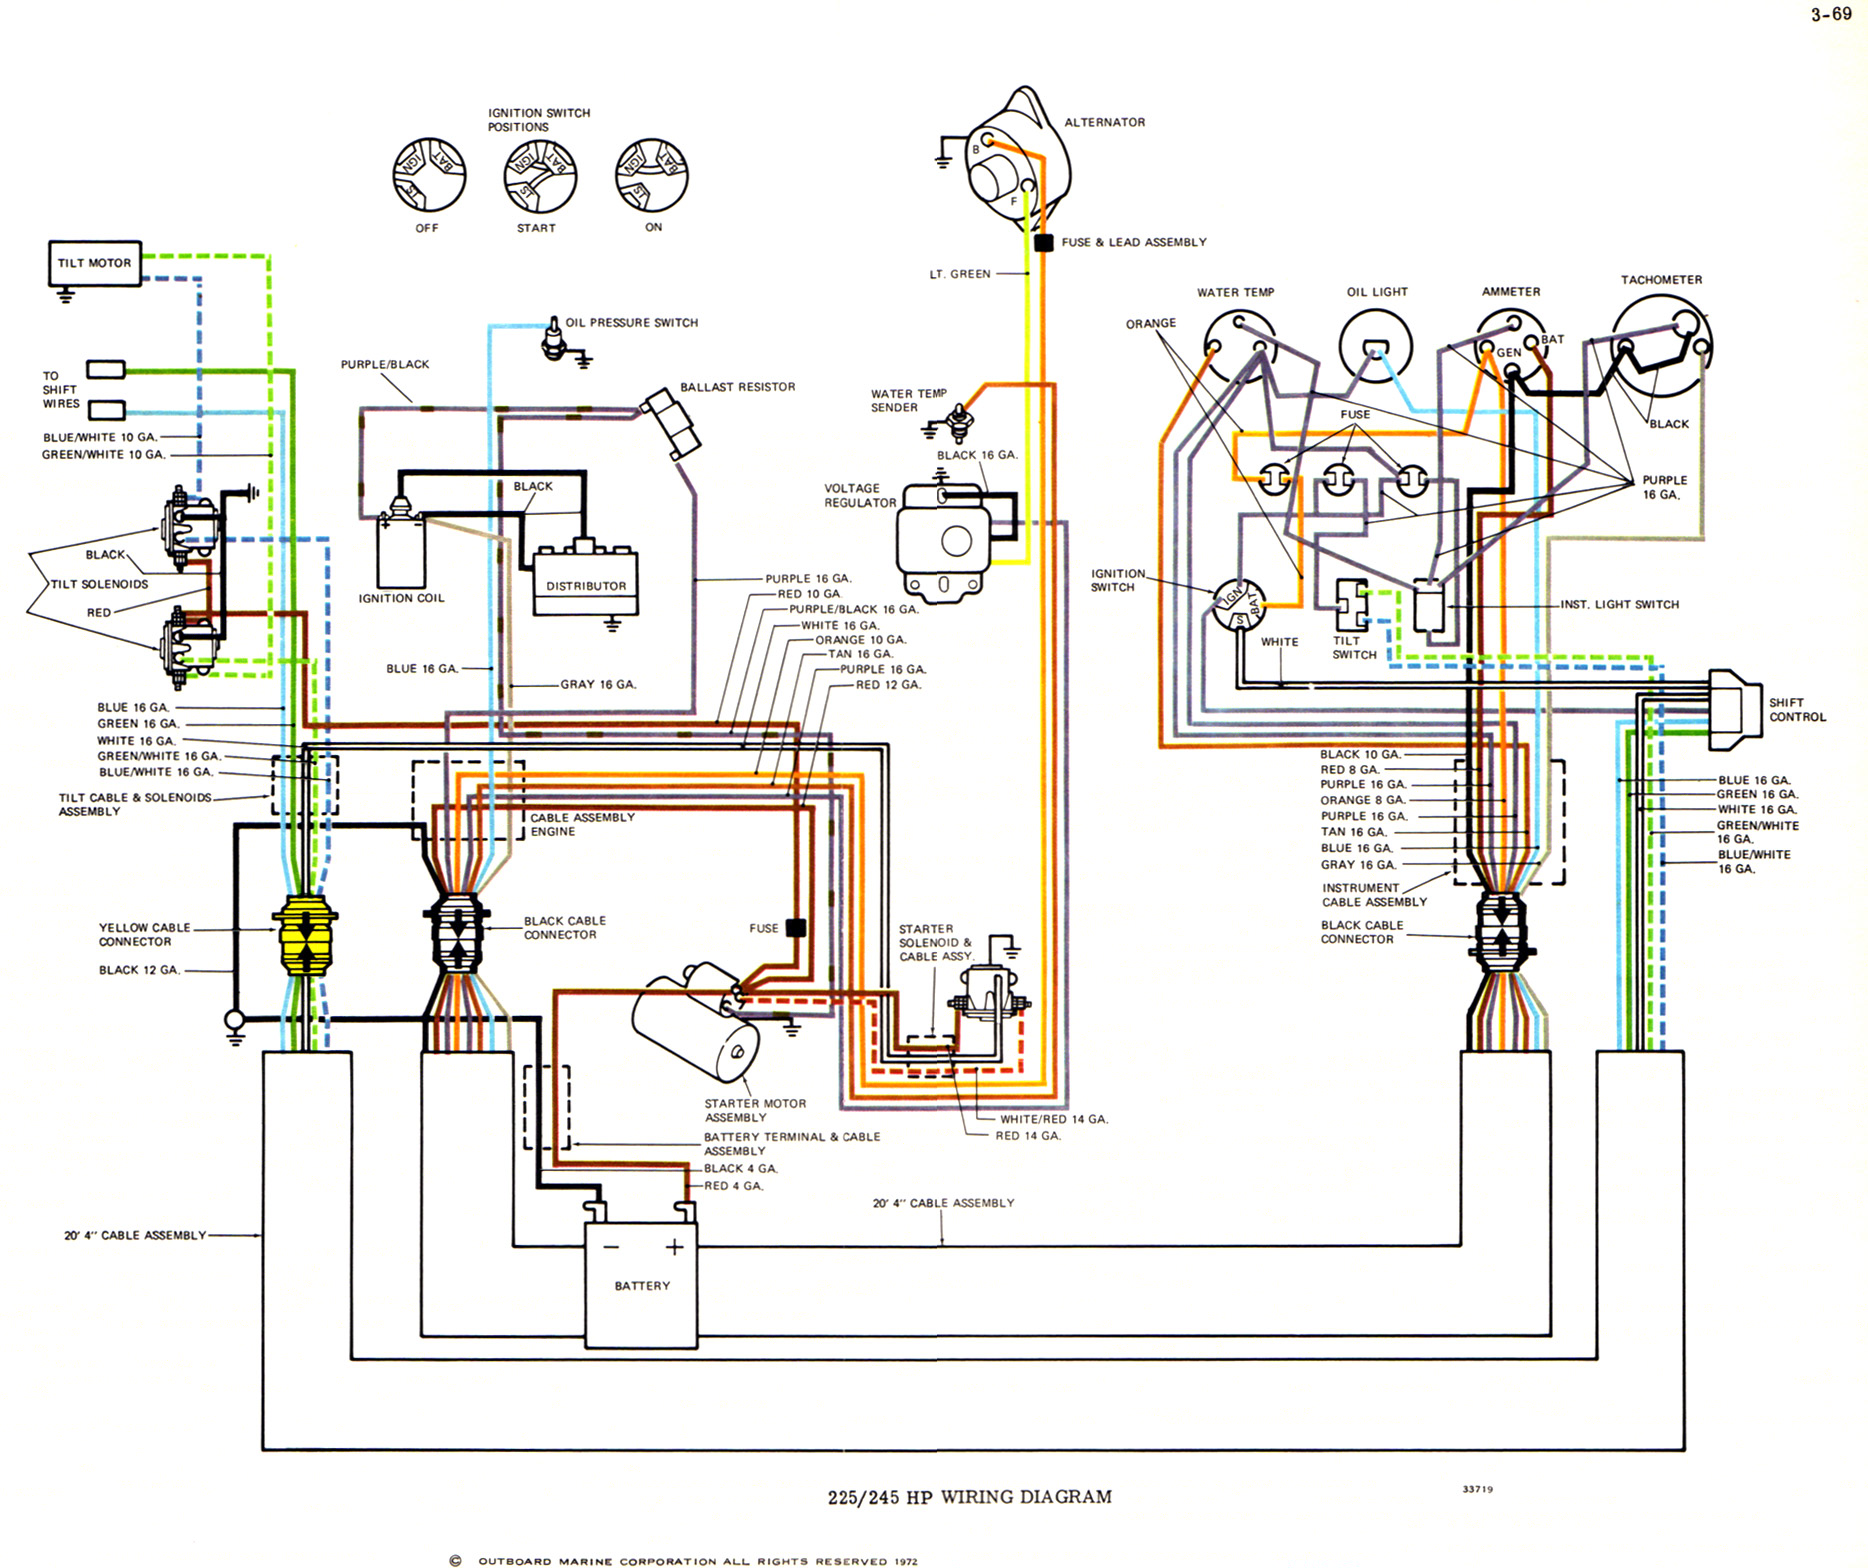 hight resolution of omc wiring diagrams simple wiring schema 12 volt switch wiring diagram omc trolling motor wiring diagram free picture